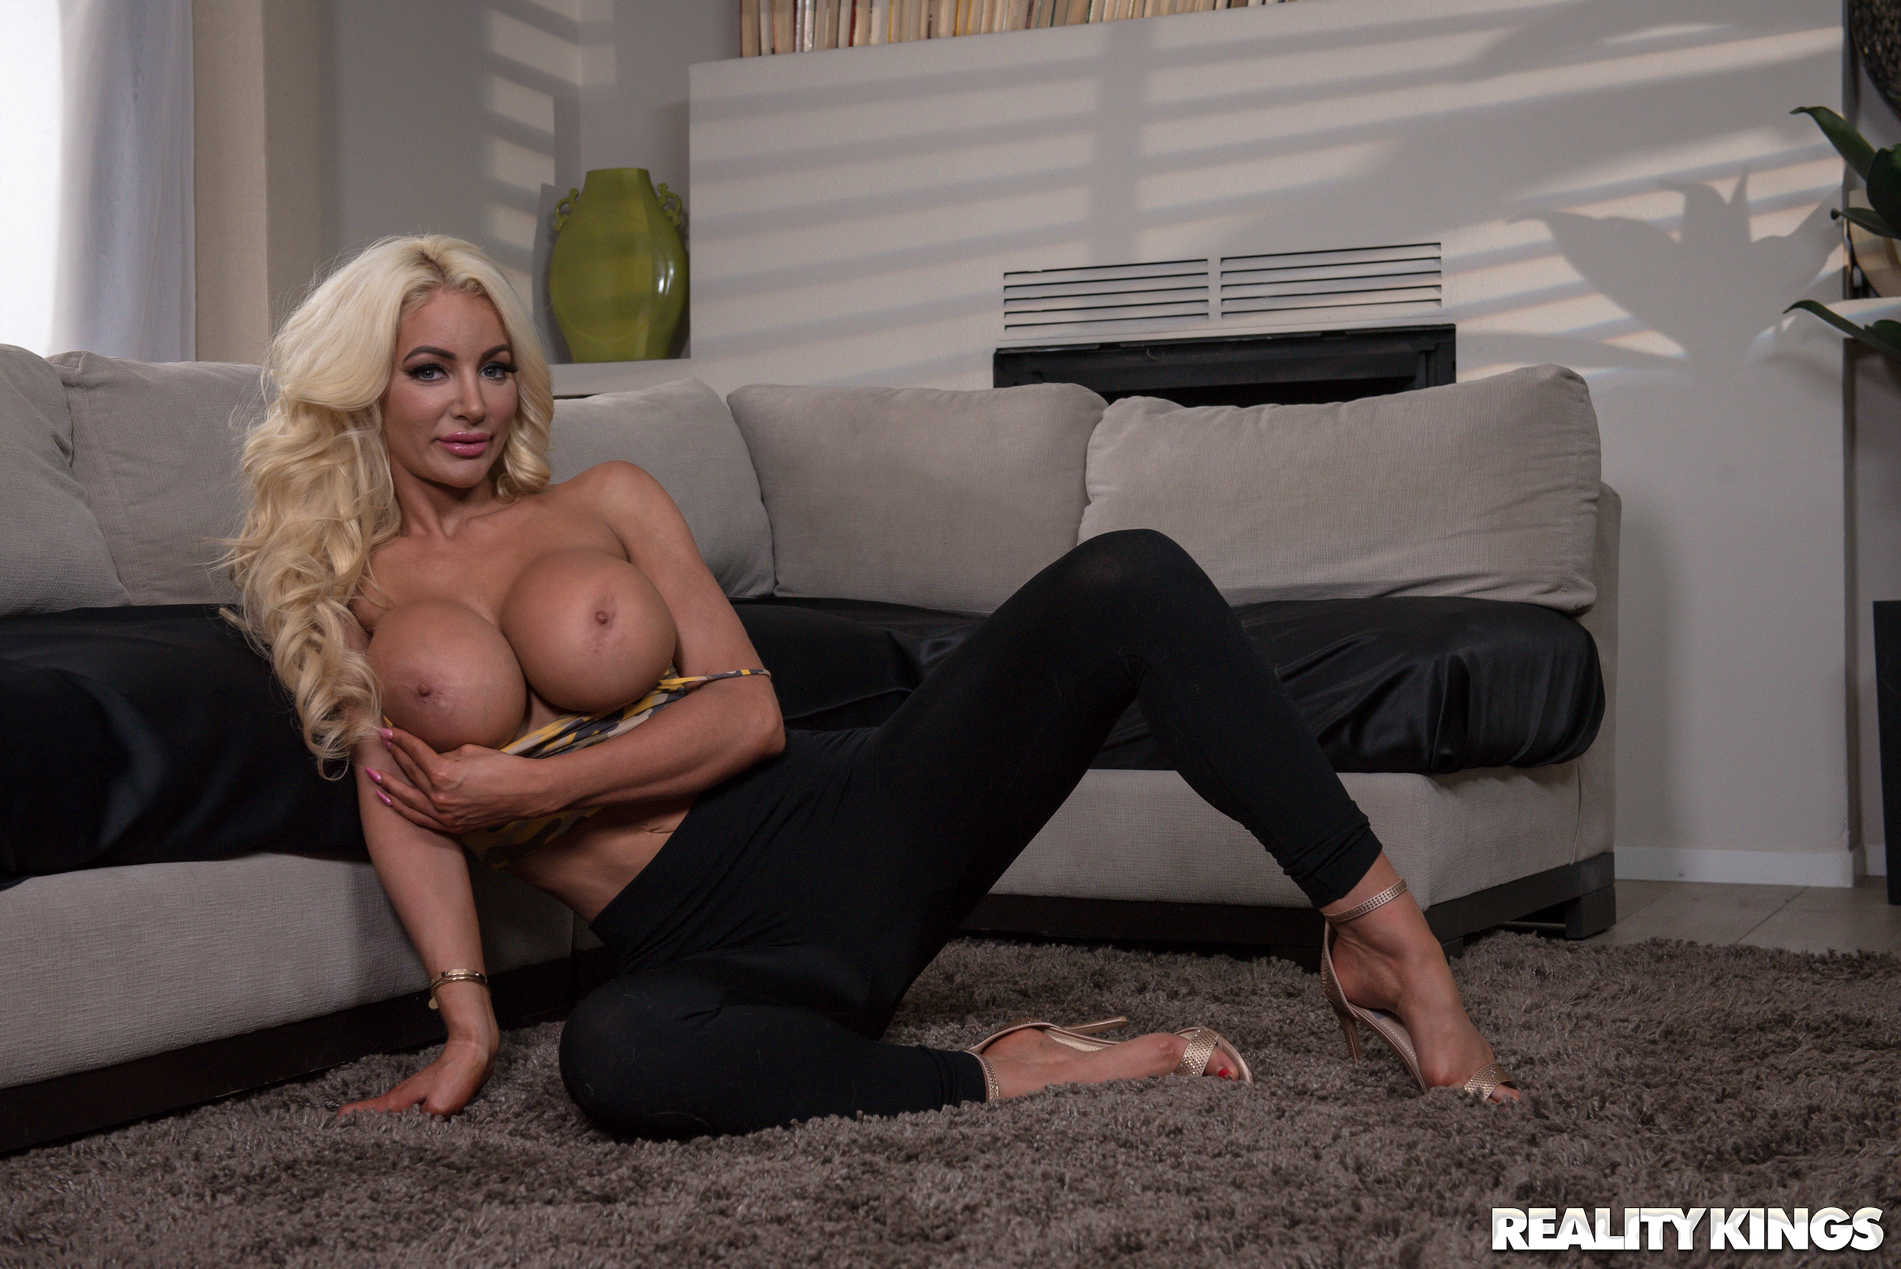 Reality Kings 'Just Gotta Rest My Breasts' starring Nicolette Shea (Photo 9)